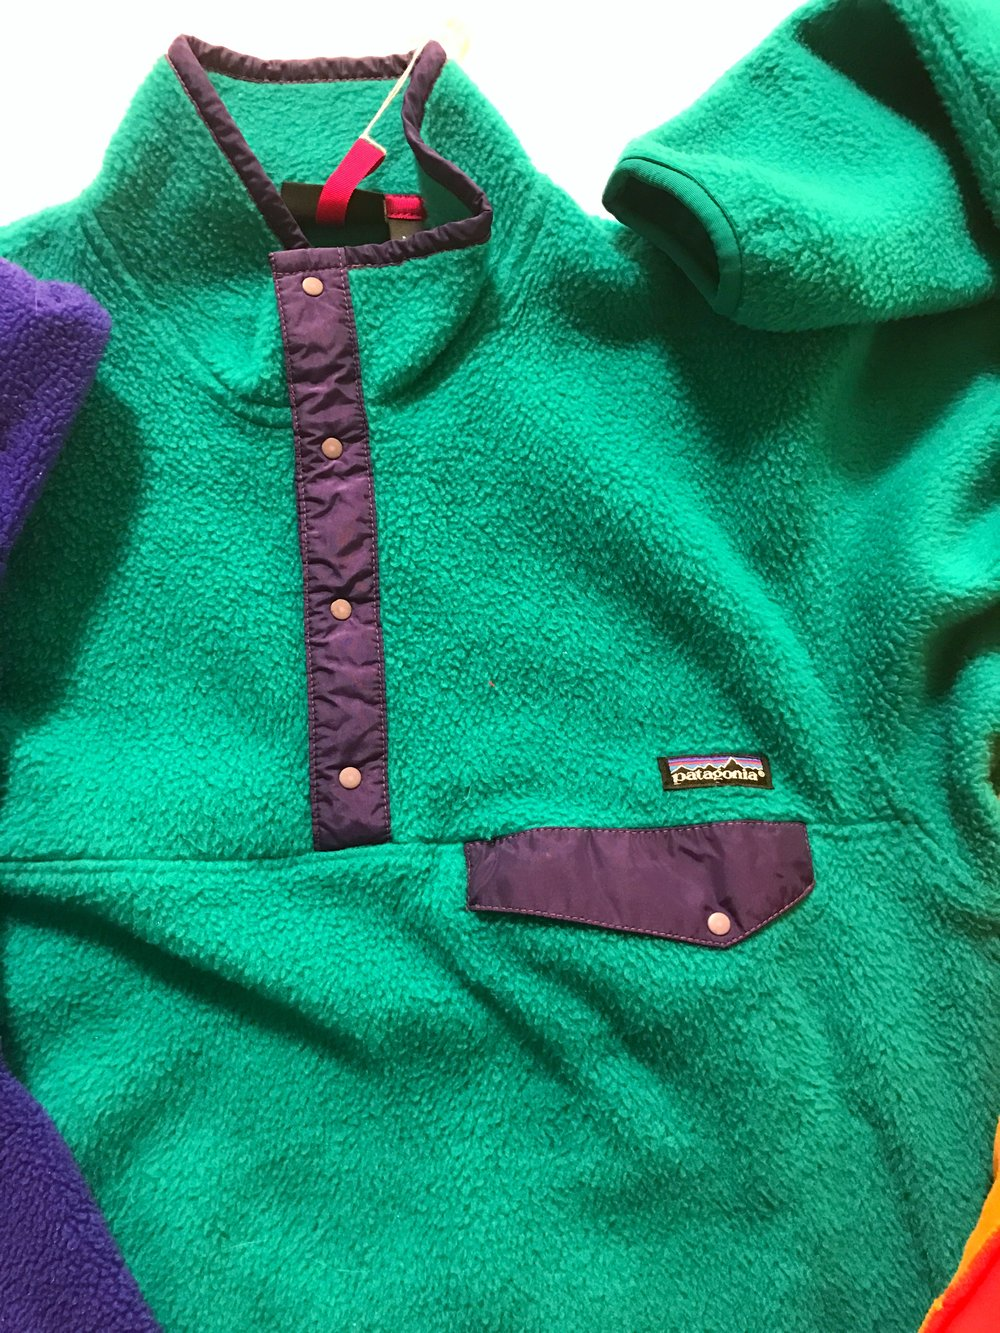 "This early Synchilla Snap-T has been added to the permanent collection at MoMA. Of special note, the off-set snap on the chest pocket was designed by a member of Patagonia's sailing department. ""It kept his sunglasses from sliding into his armpit,"" Laine explained. That shape continues to reappear in designs new and old today."